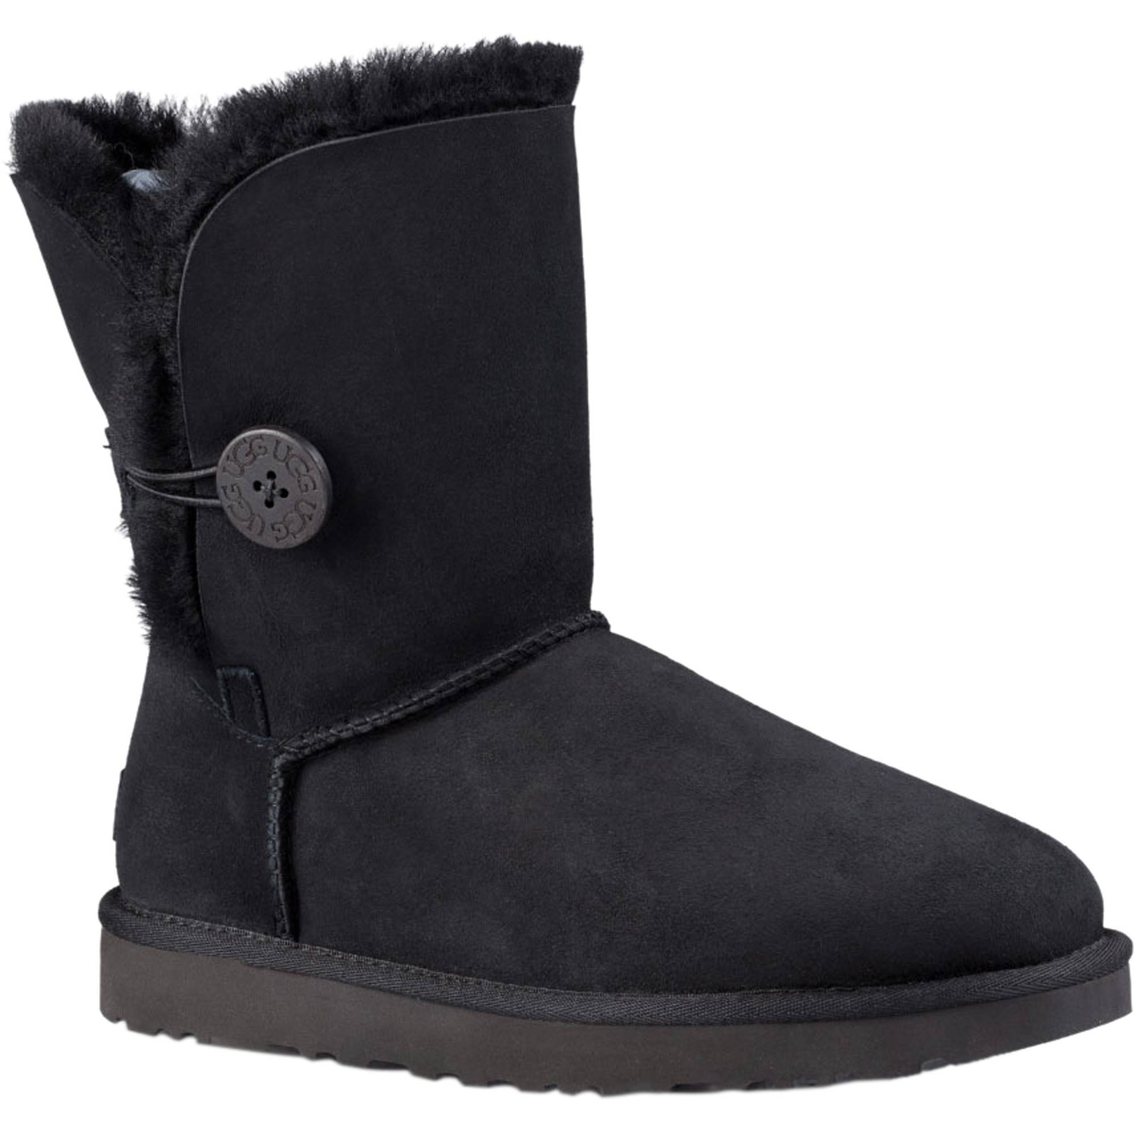 68539b3f944 Ugg Bailey Button Ii Short Boots | Booties | Shoes | Shop The Exchange